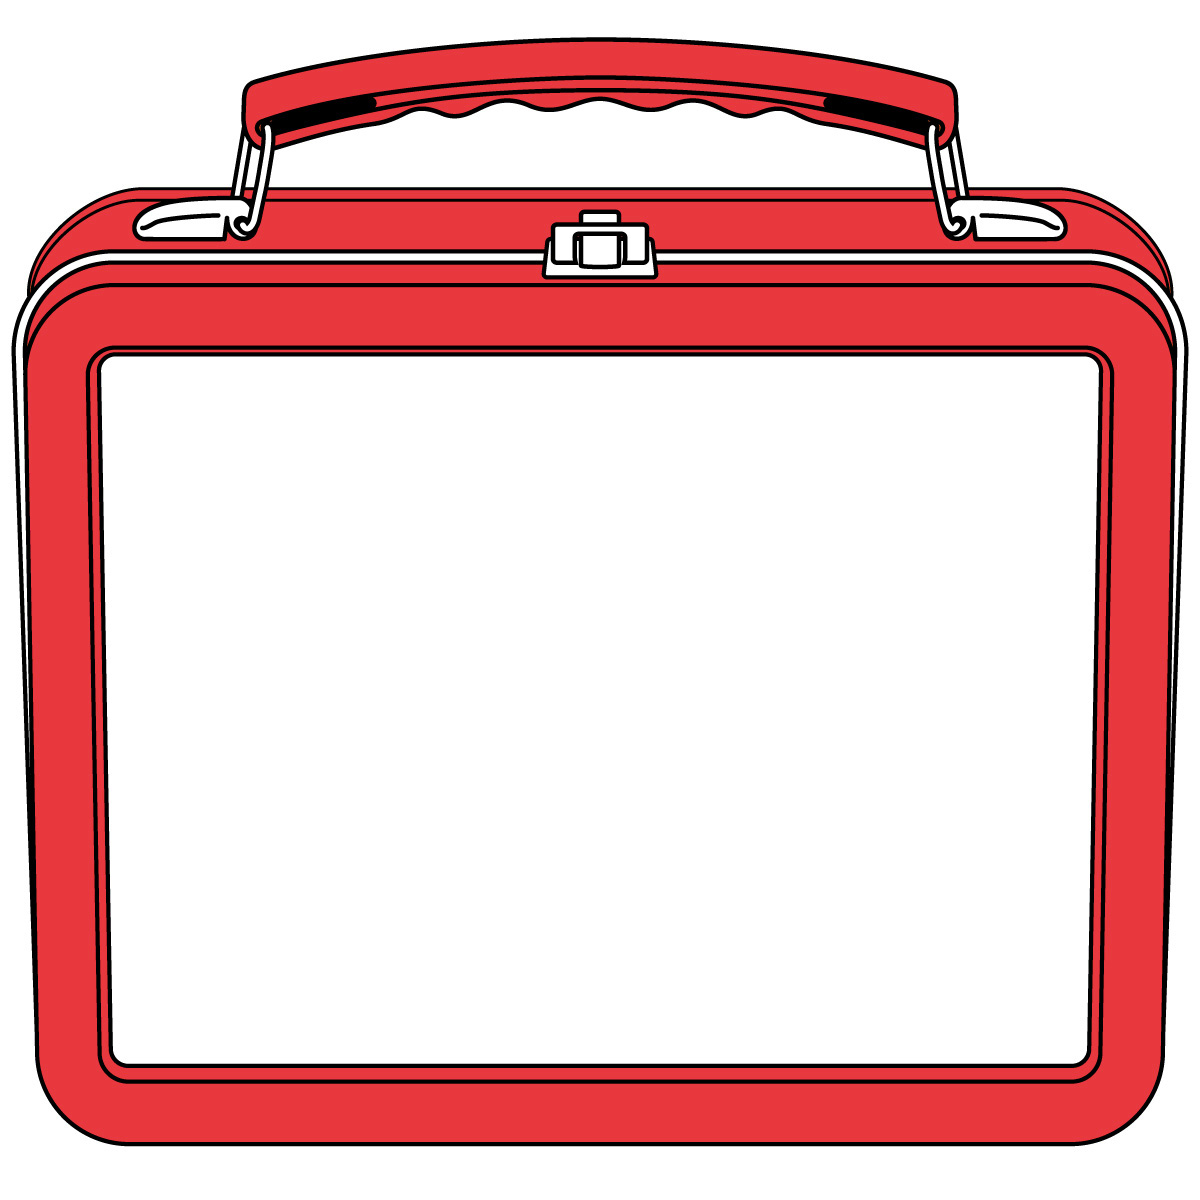 Bag clipart rectangle Healthy Images Clipart Snack healthy%20snack%20clipart